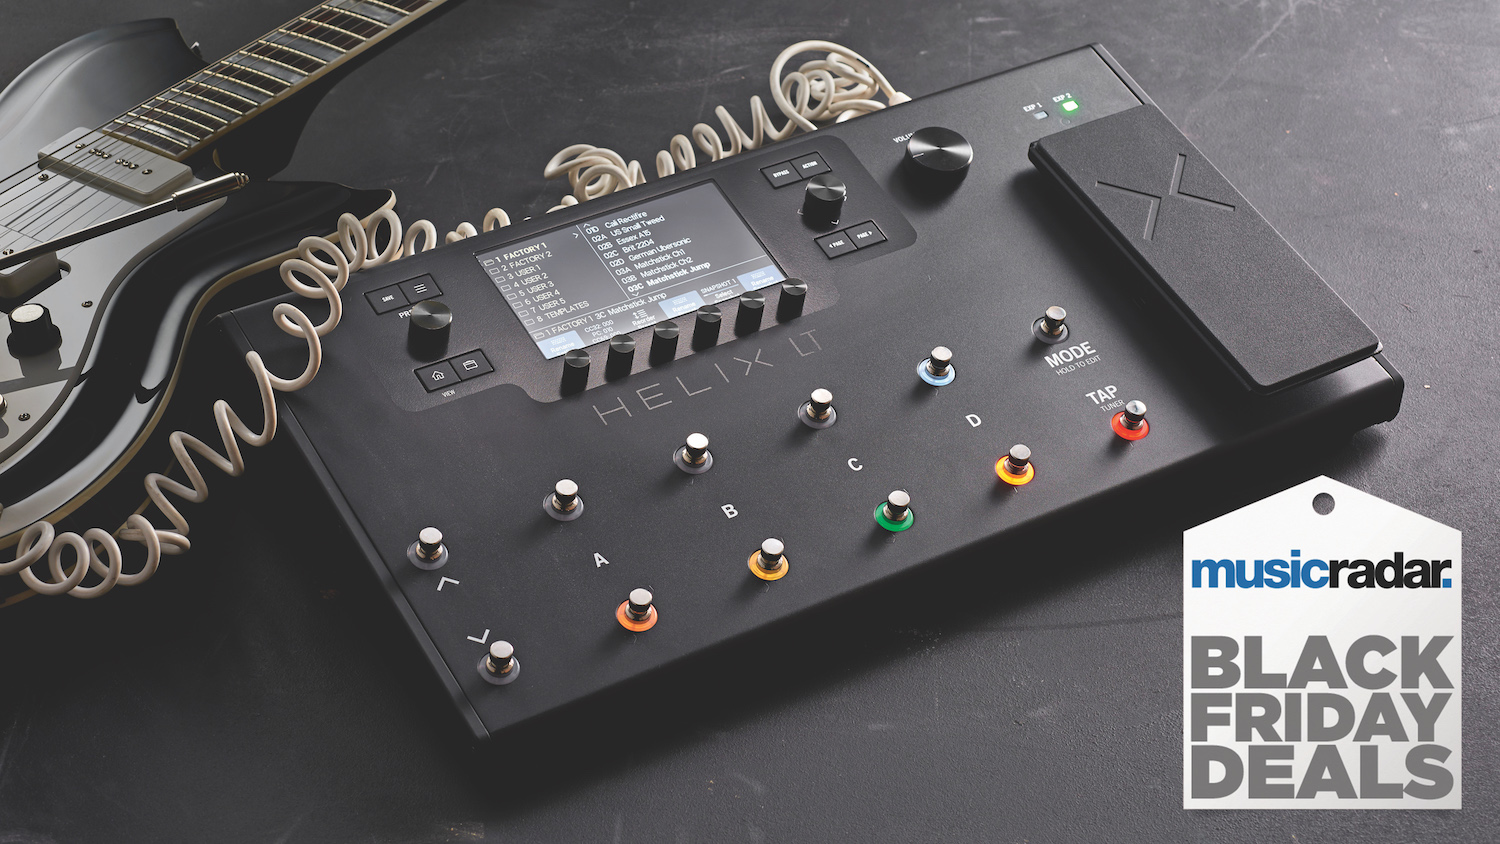 The Best Line 6 Helix Black Friday Deals Top Prices On The Line 6 Helix Helix Lt Hx Stomp And Hx Effects Musicradar